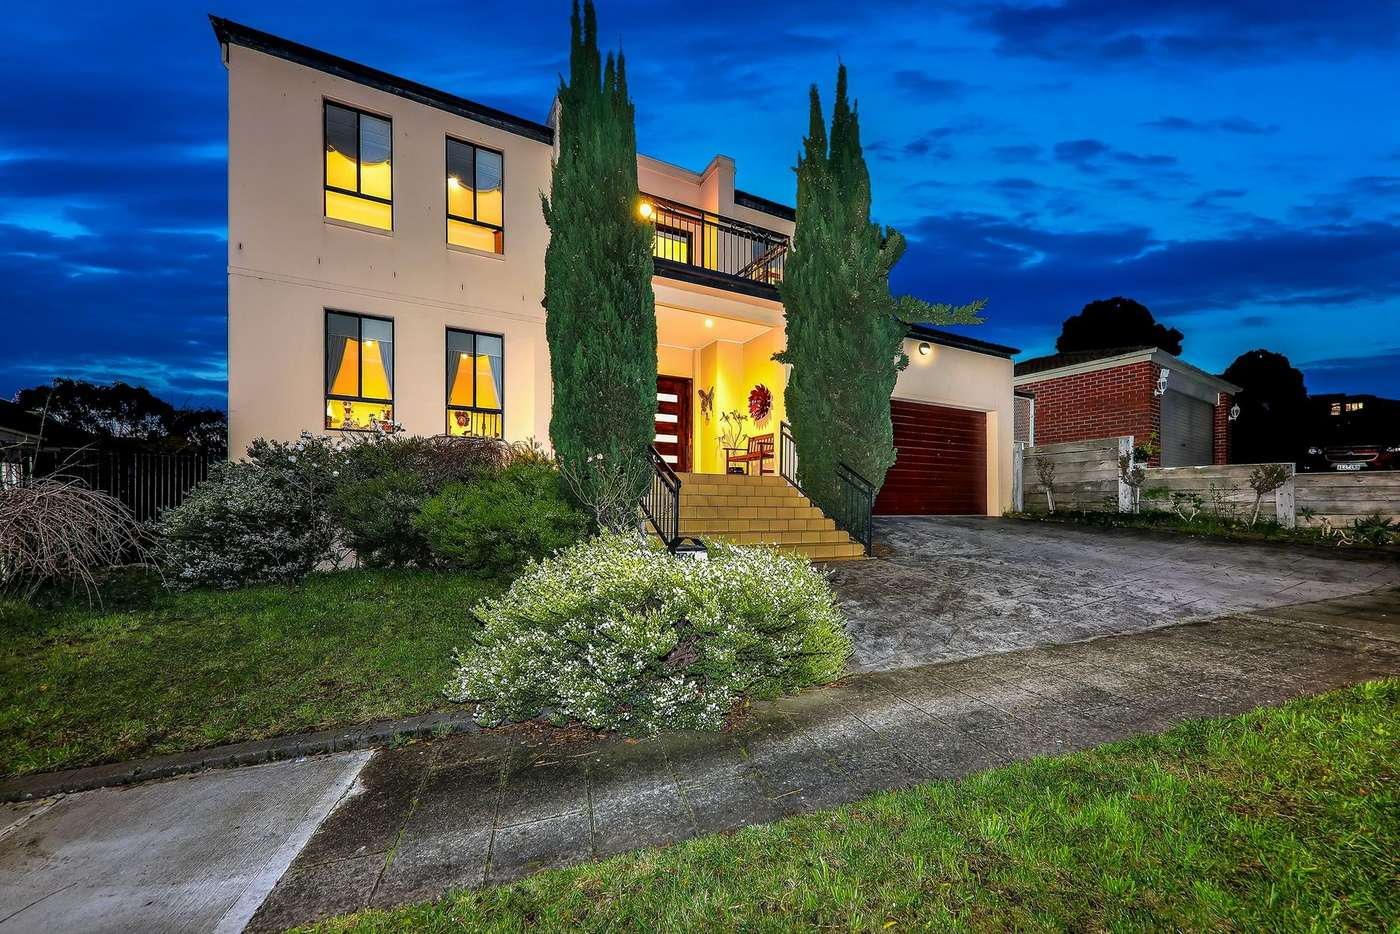 Main view of Homely house listing, 33 Stillwell Crescent, Roxburgh Park VIC 3064